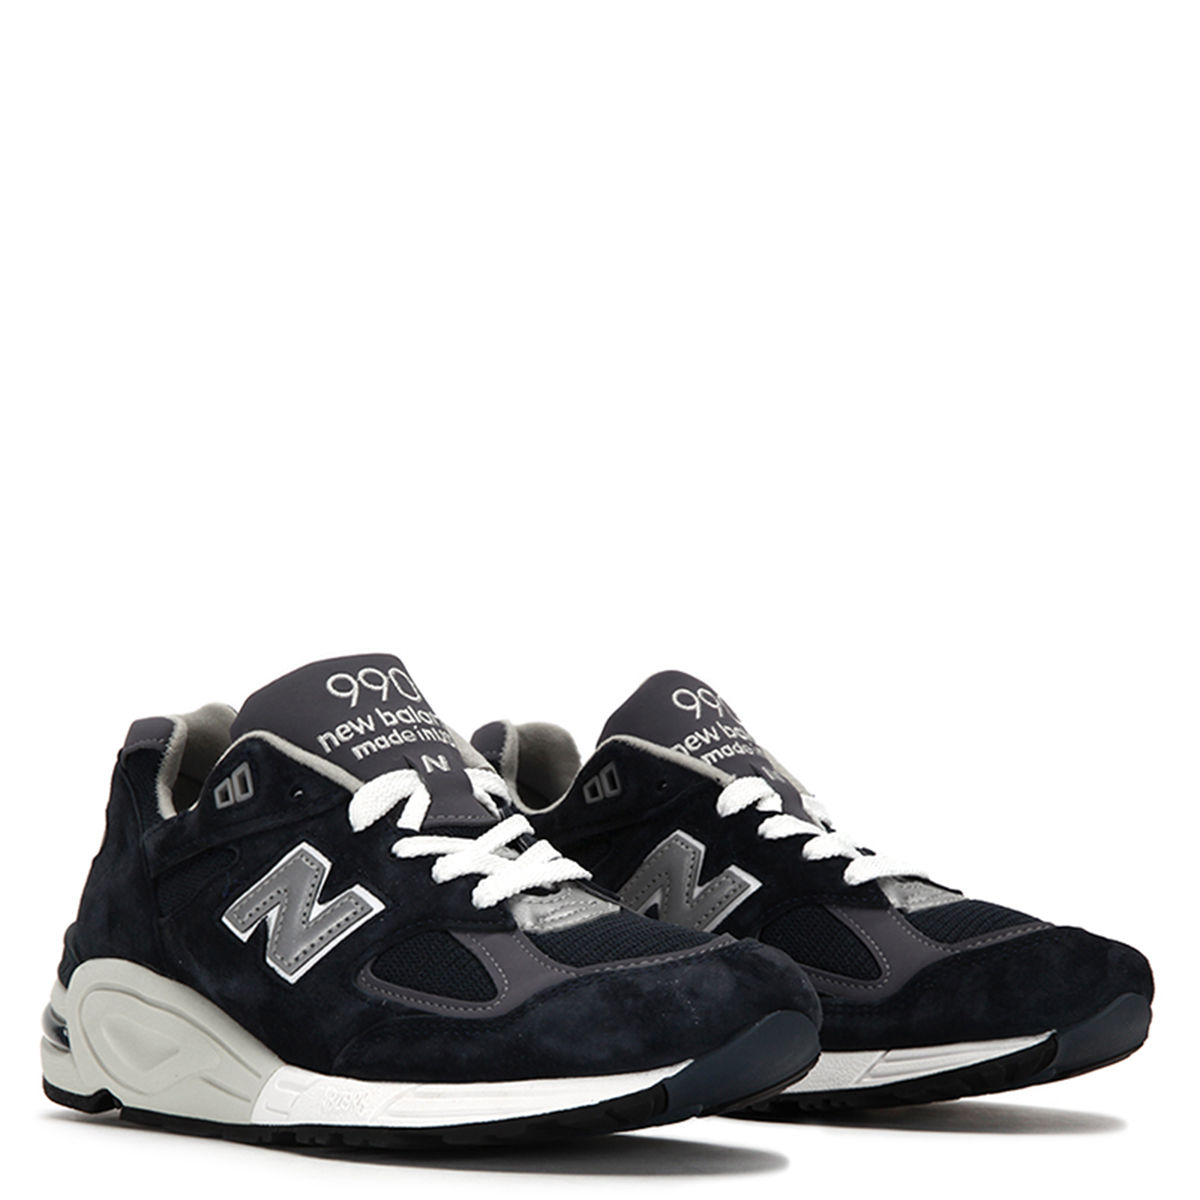 New Balance Men's 990v2 Made In USA Sneakers M99NV2 Navy by